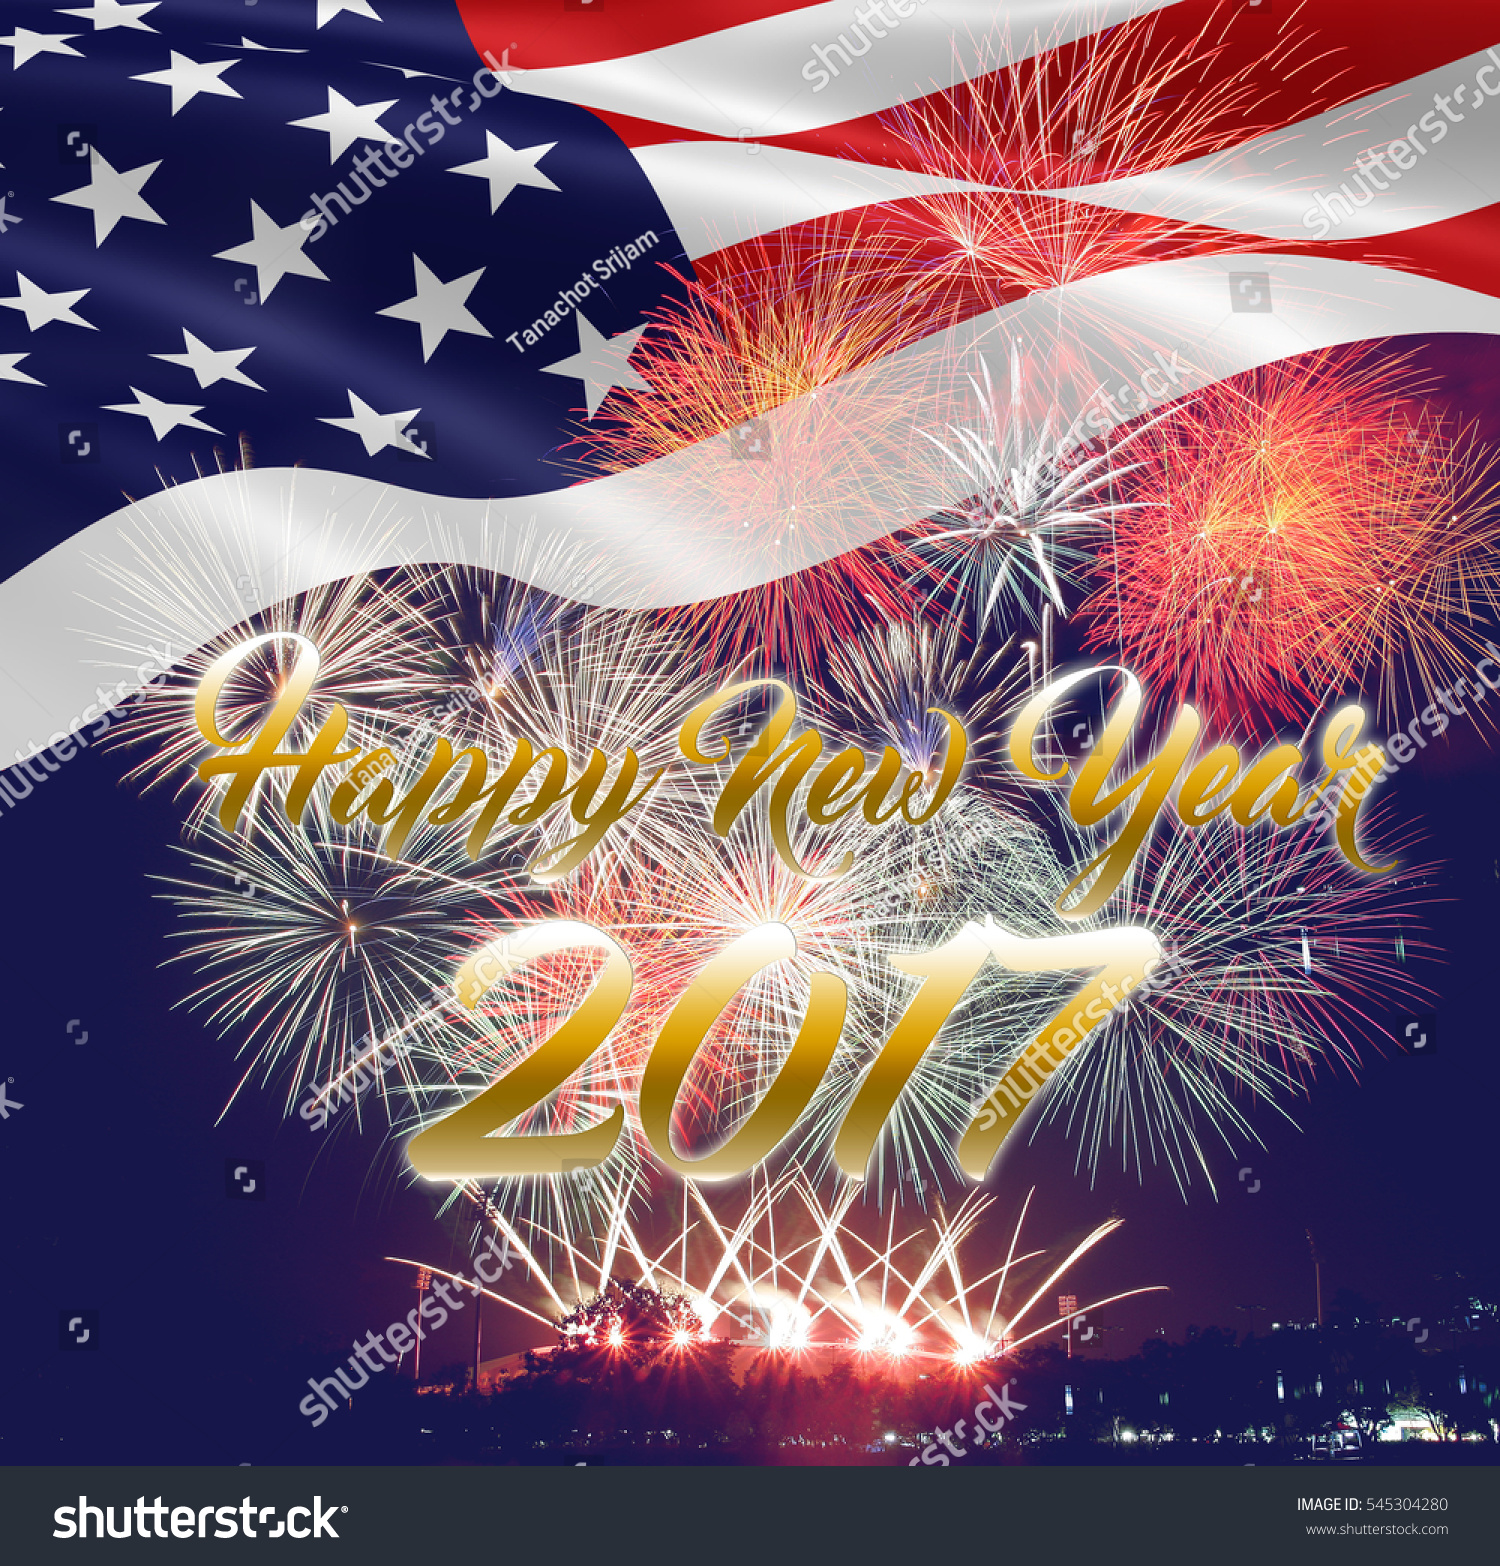 happy new year 2017 usa flag with fireworks background